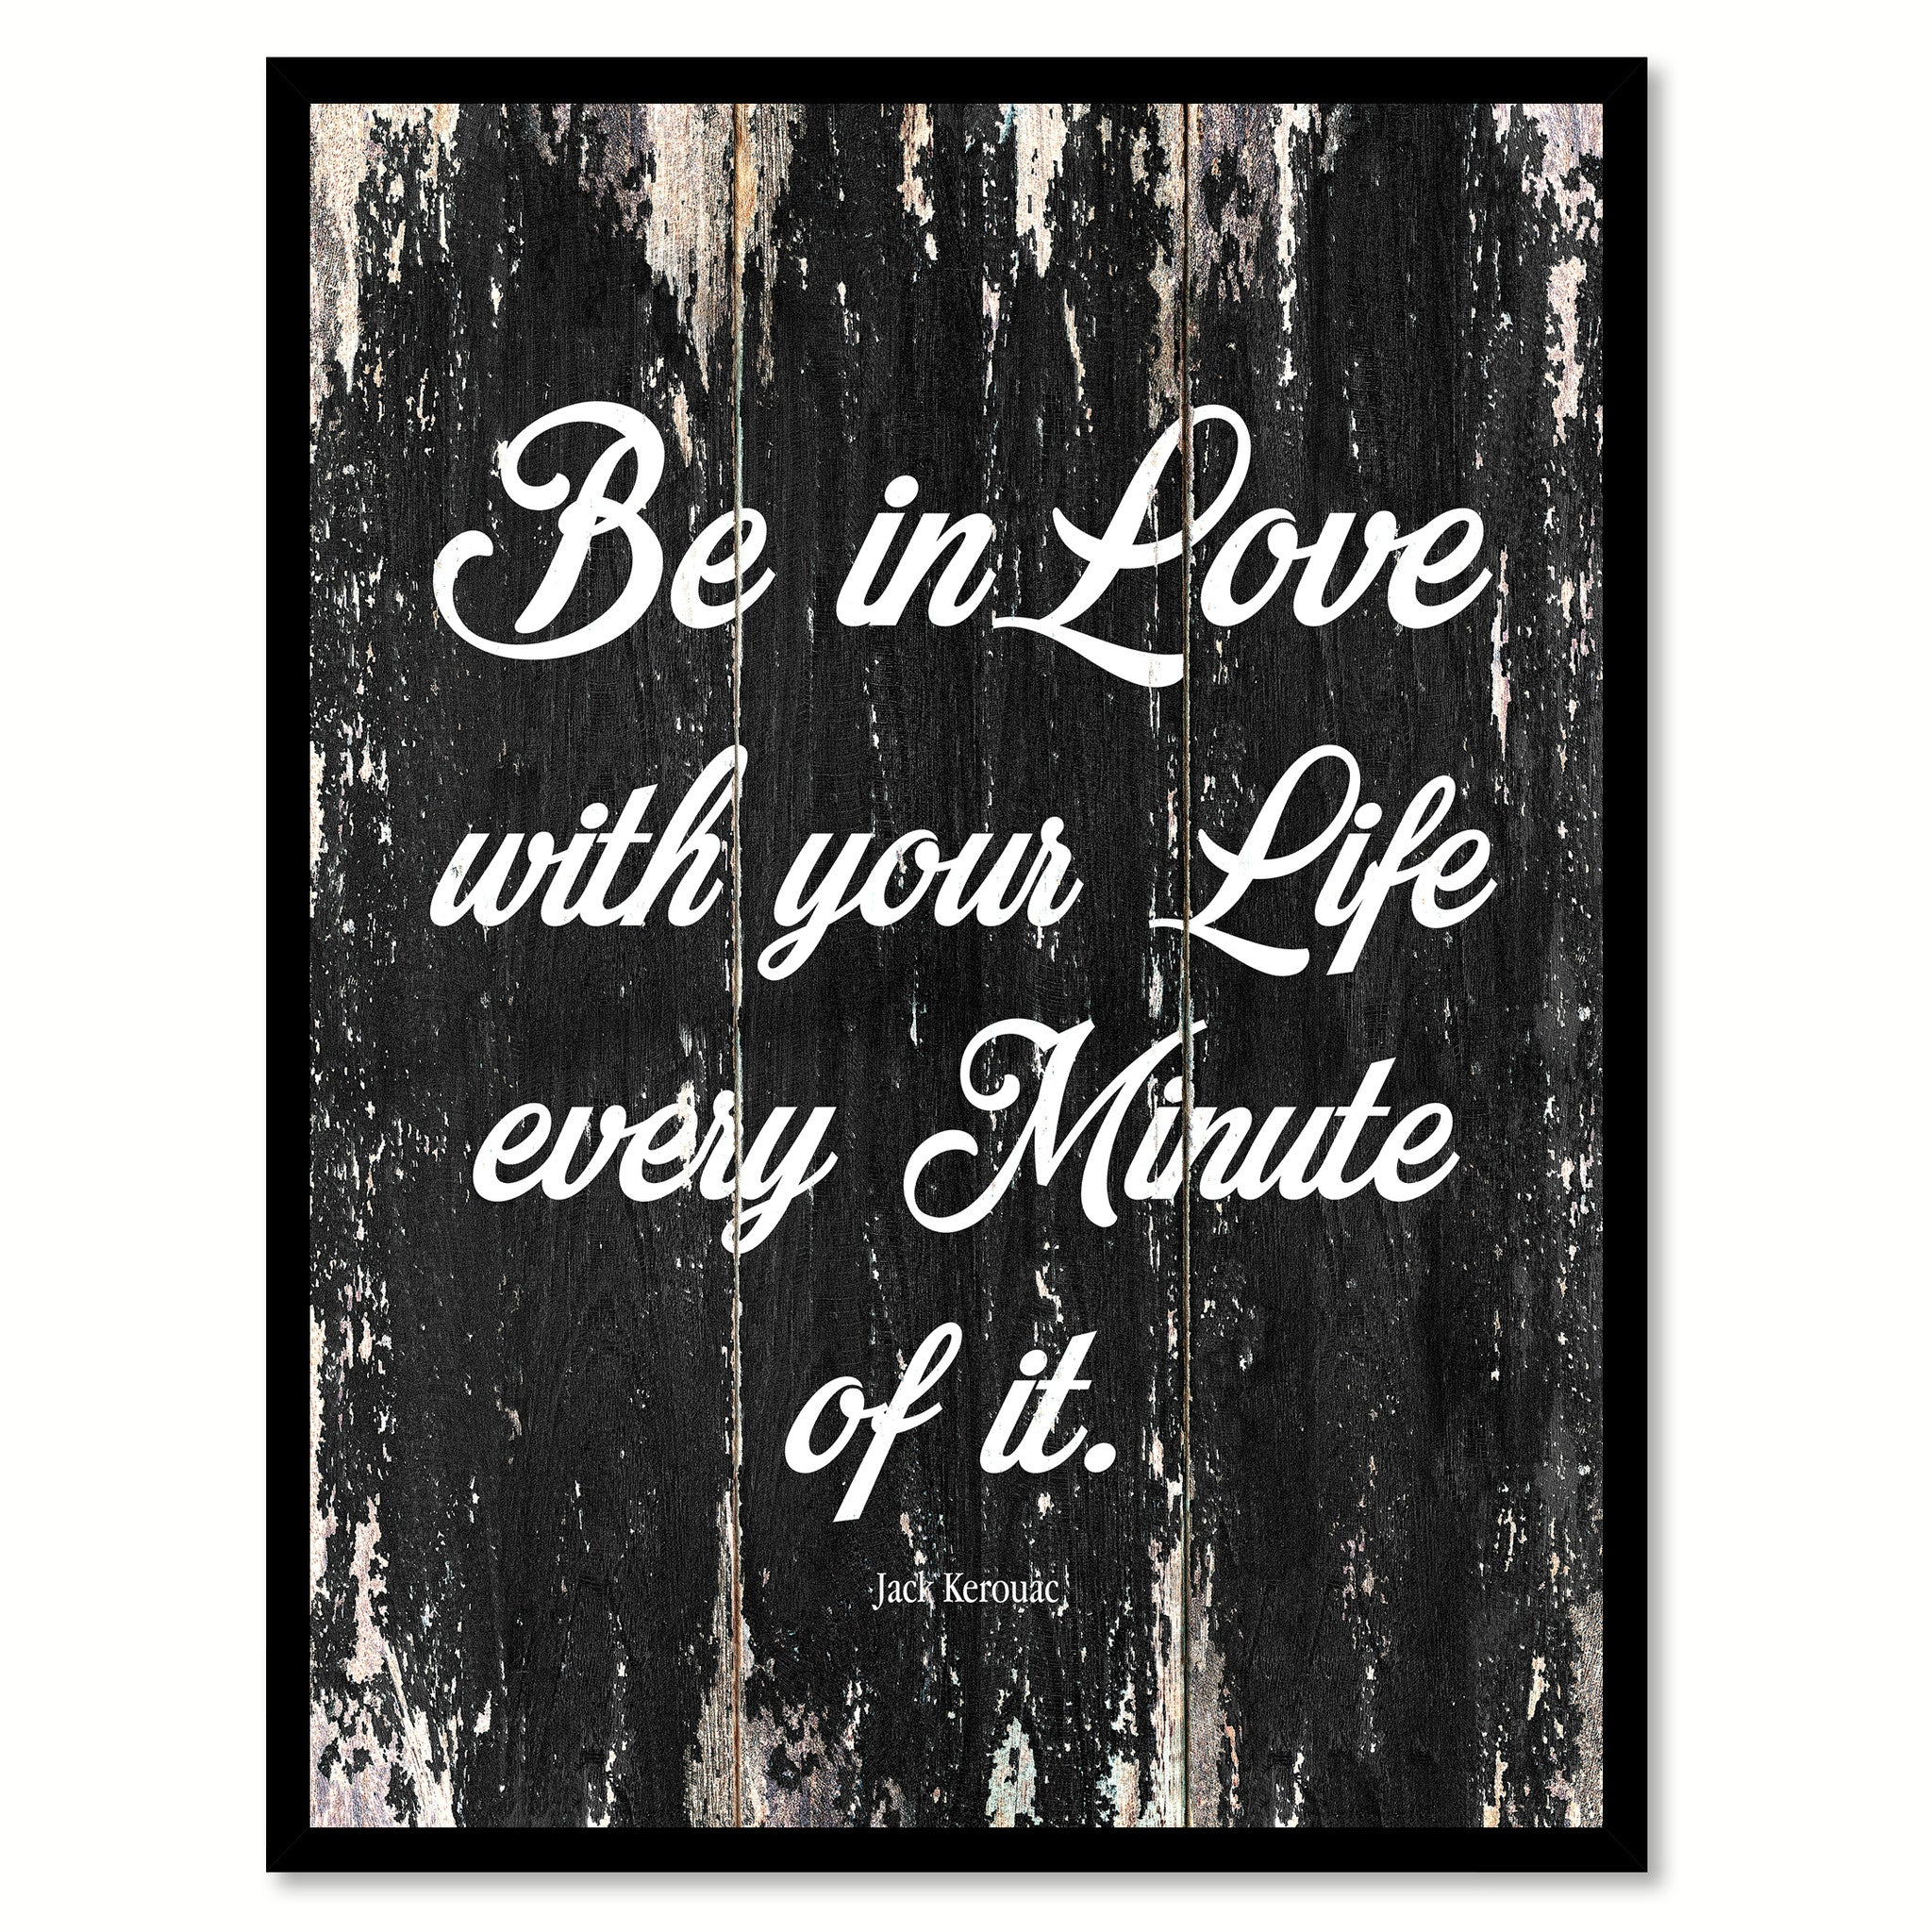 Be in love with your life every minute of it Motivational Quote Saying Canvas Print with Picture Frame Home Decor Wall Art